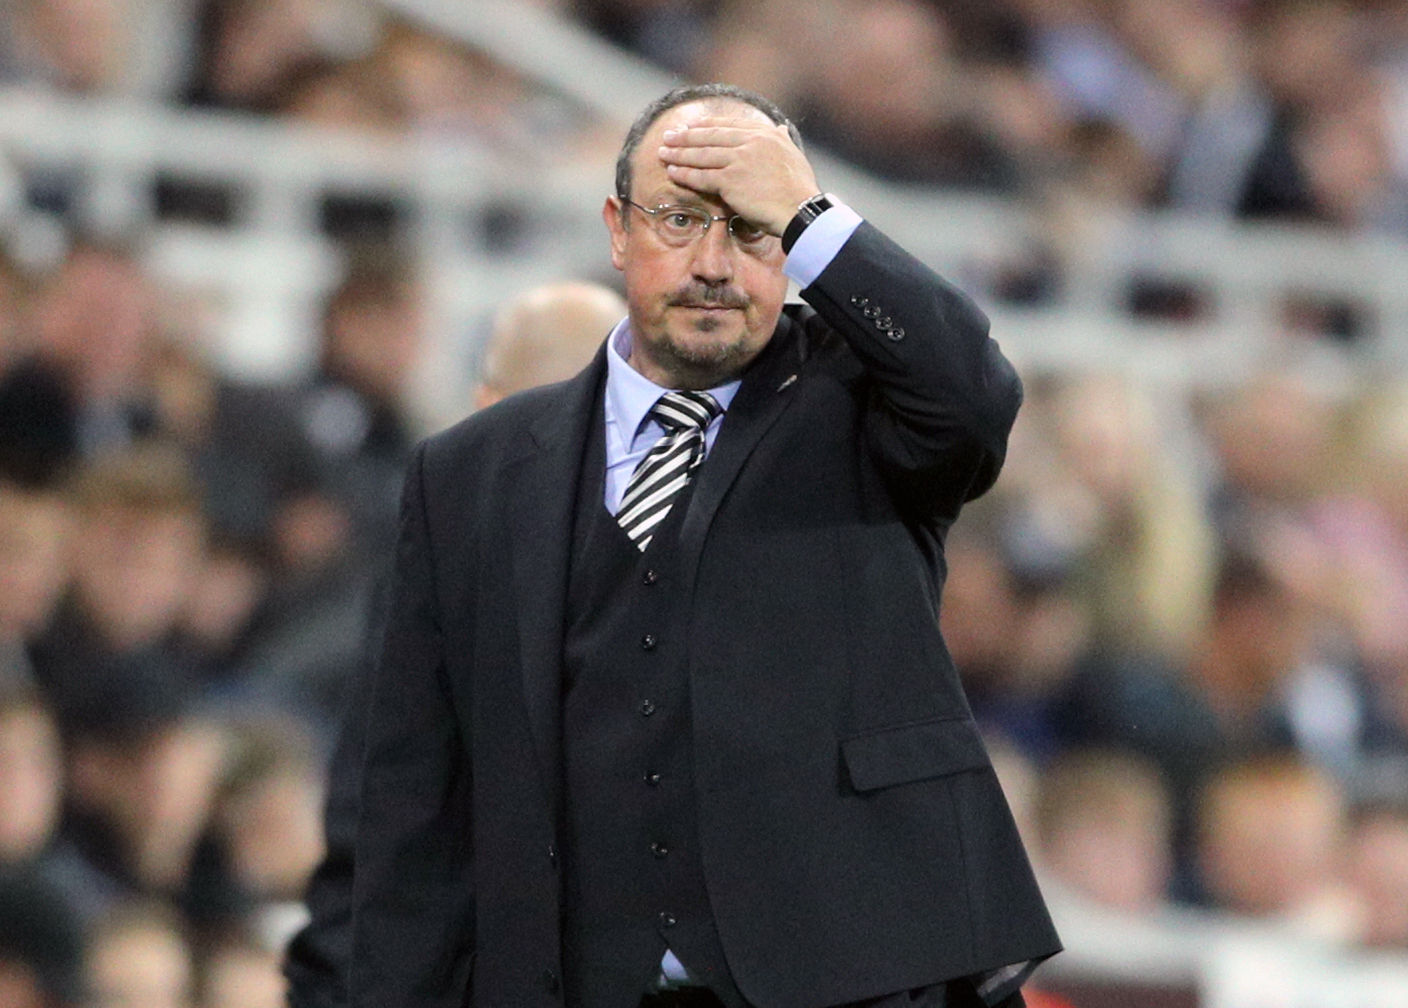 FRUSTRATED: Newcastle United manager Rafael Benitez